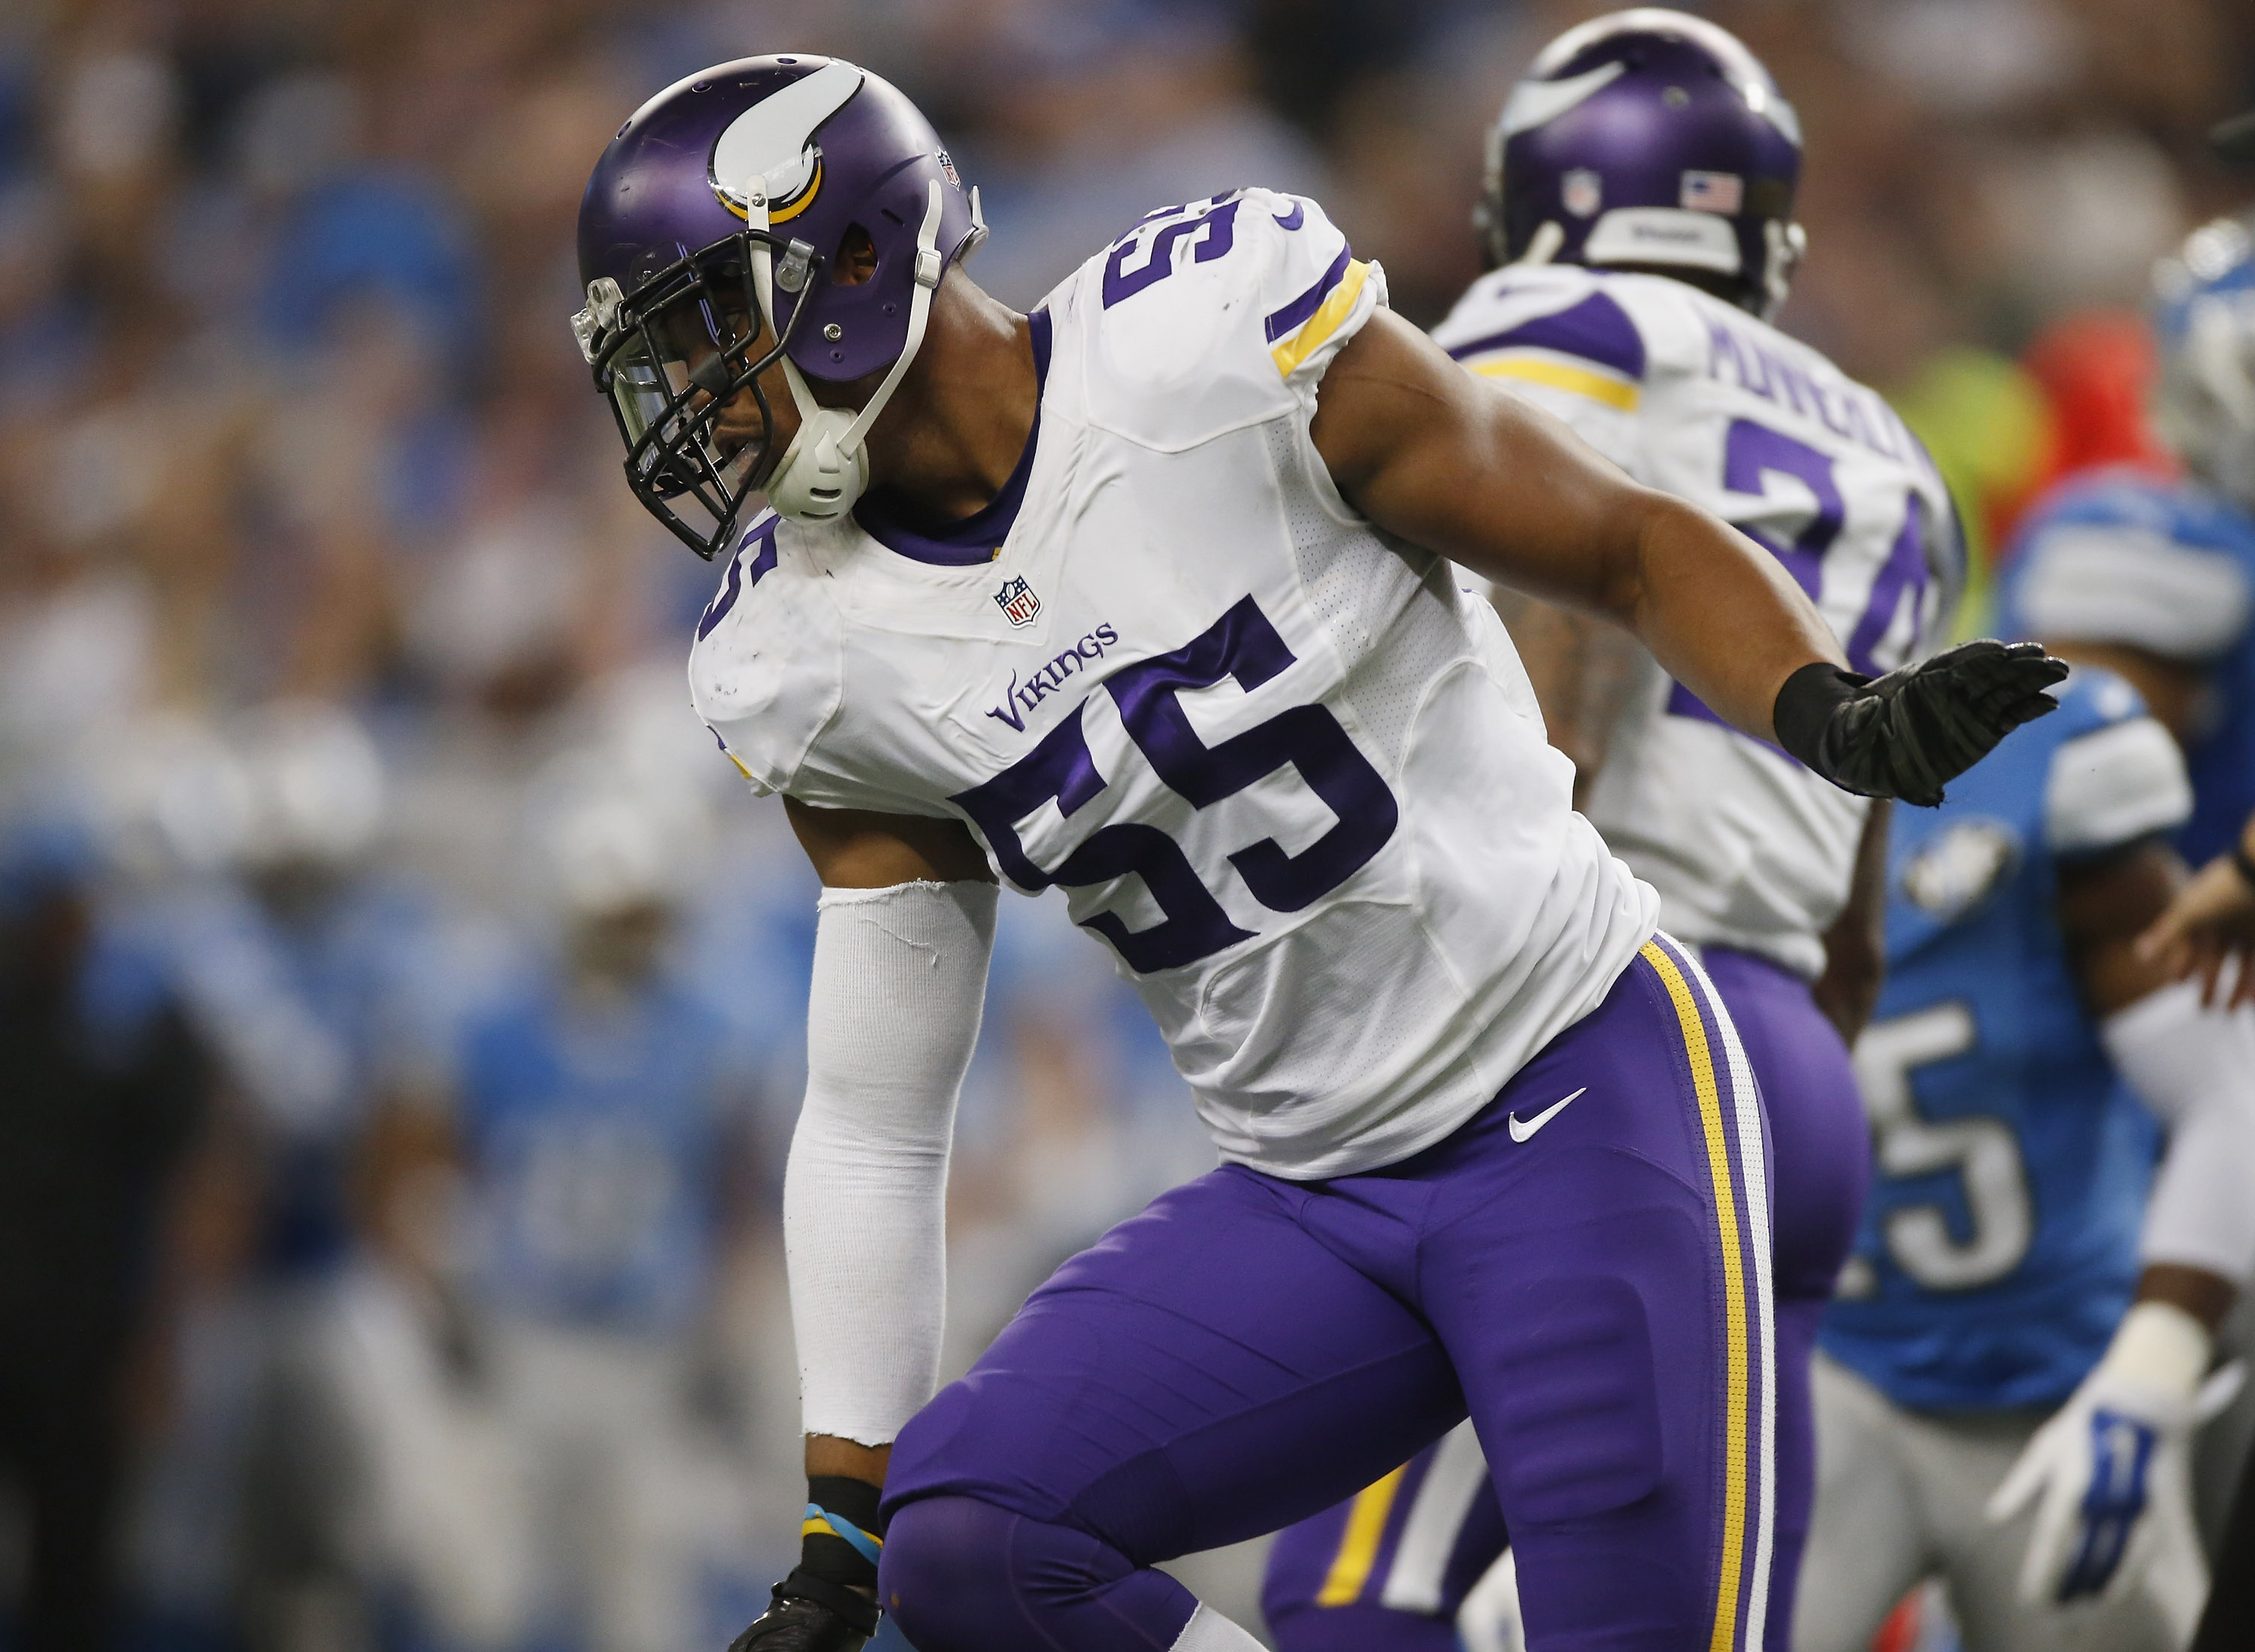 Vikings: The game that ended Anthony Barr's career in Minnesota